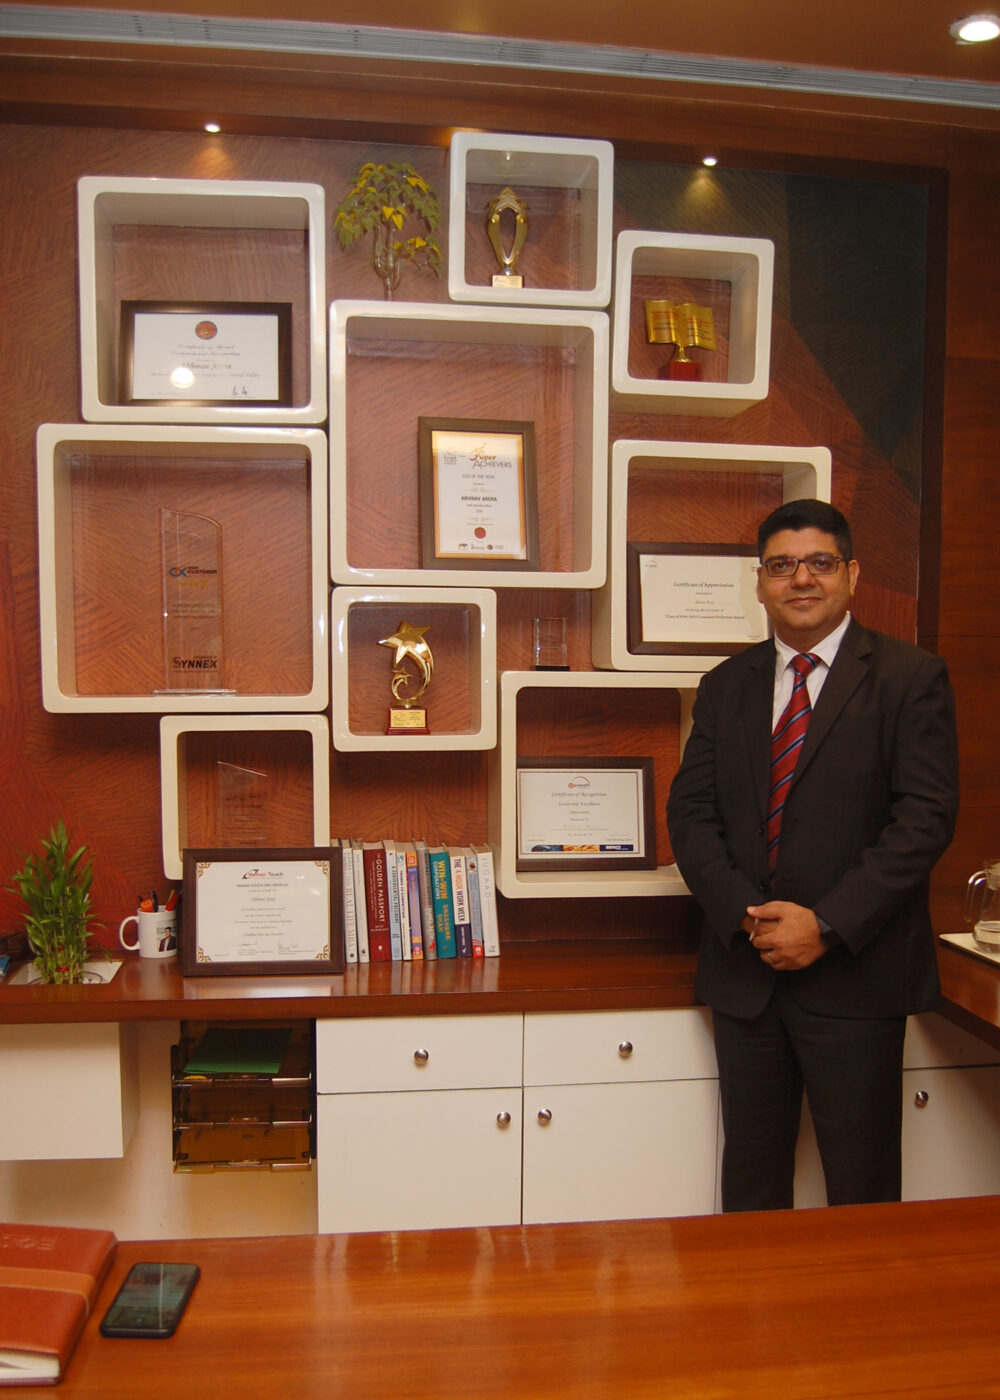 Abhinav Arora, Eureka Outsourcing Solutions: Building strong connections to surge ahead